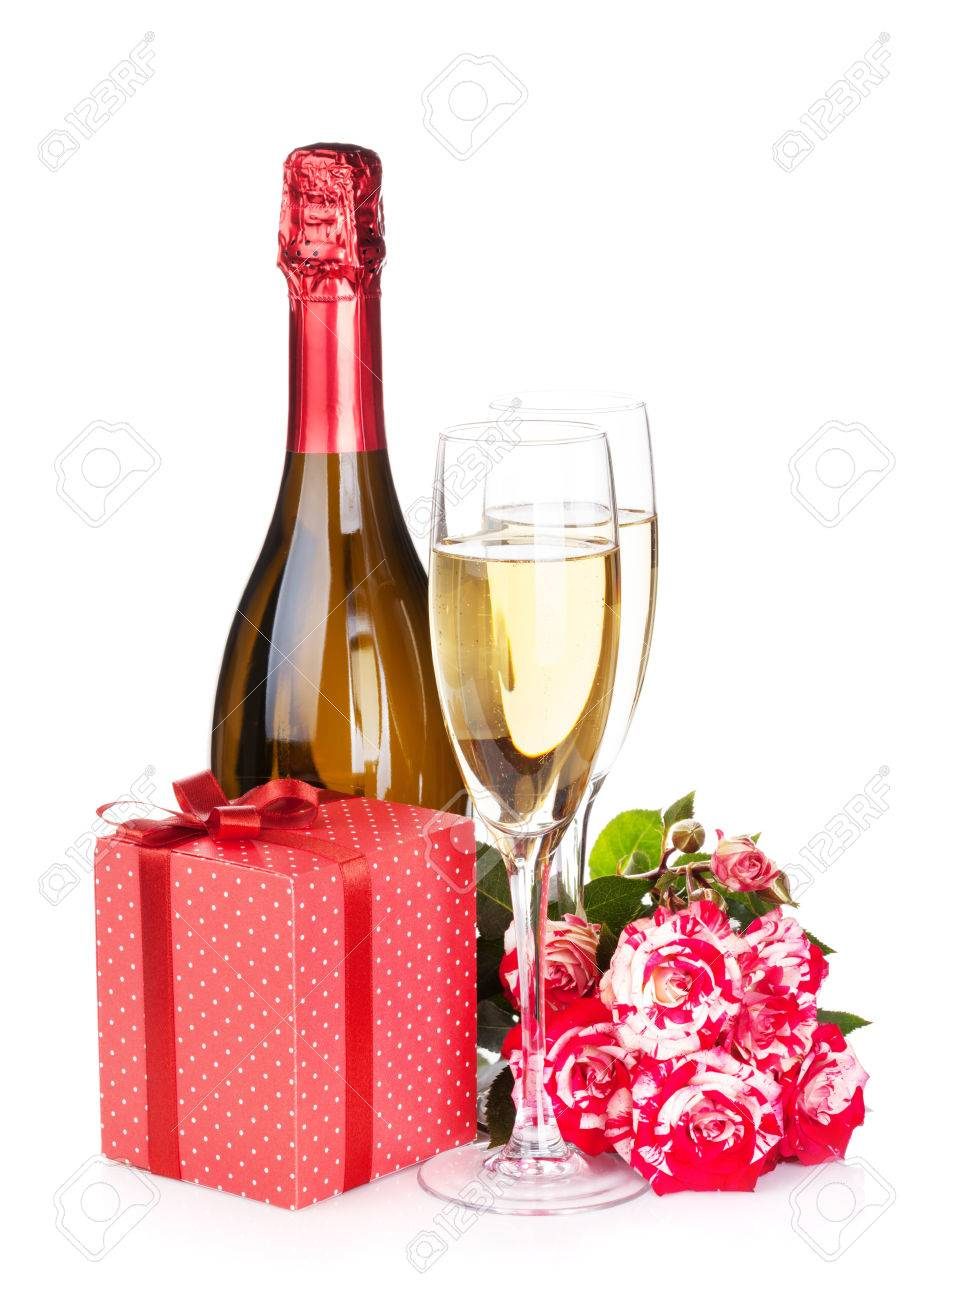 Ch&agne bottle two glasses gift box and red rose flowers. Isolated on white  sc 1 st  123RF Stock Photos & Champagne Bottle Two Glasses Gift Box And Red Rose Flowers ... Aboutintivar.Com